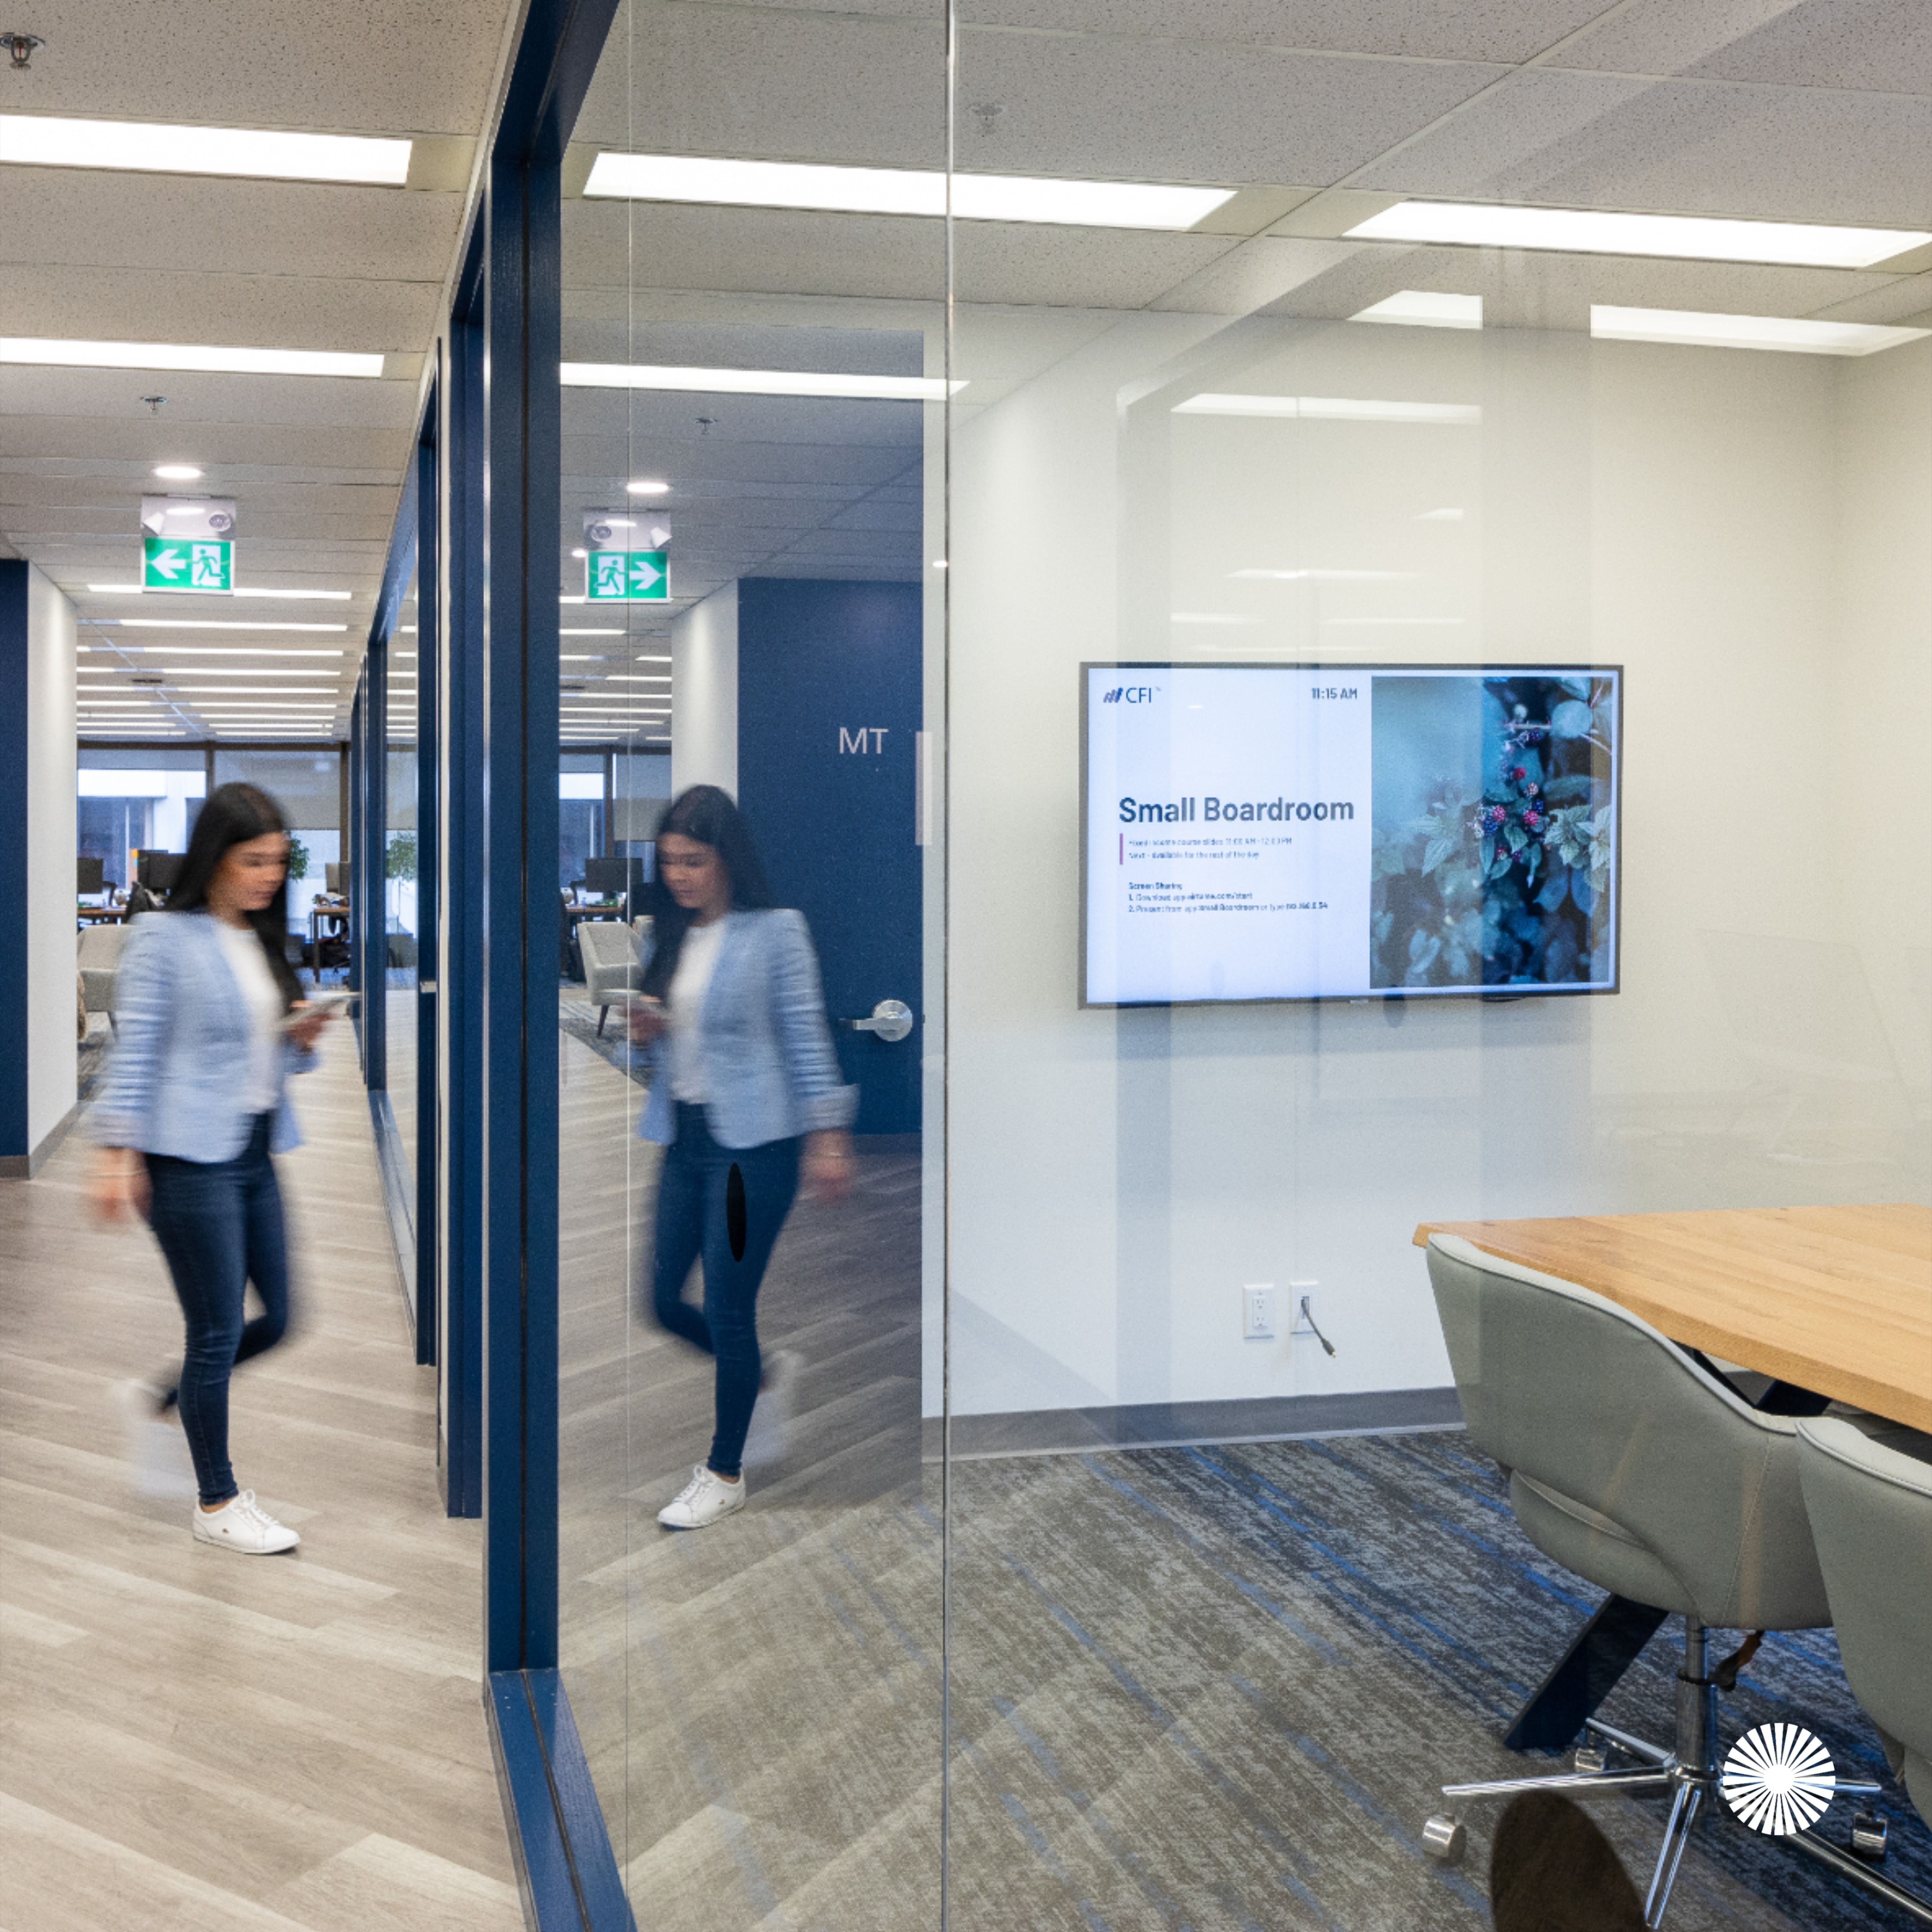 Corporate Finance Institute By Aura Office Environments In 2020 Office Design Office Space Corporate Interior Design Projects